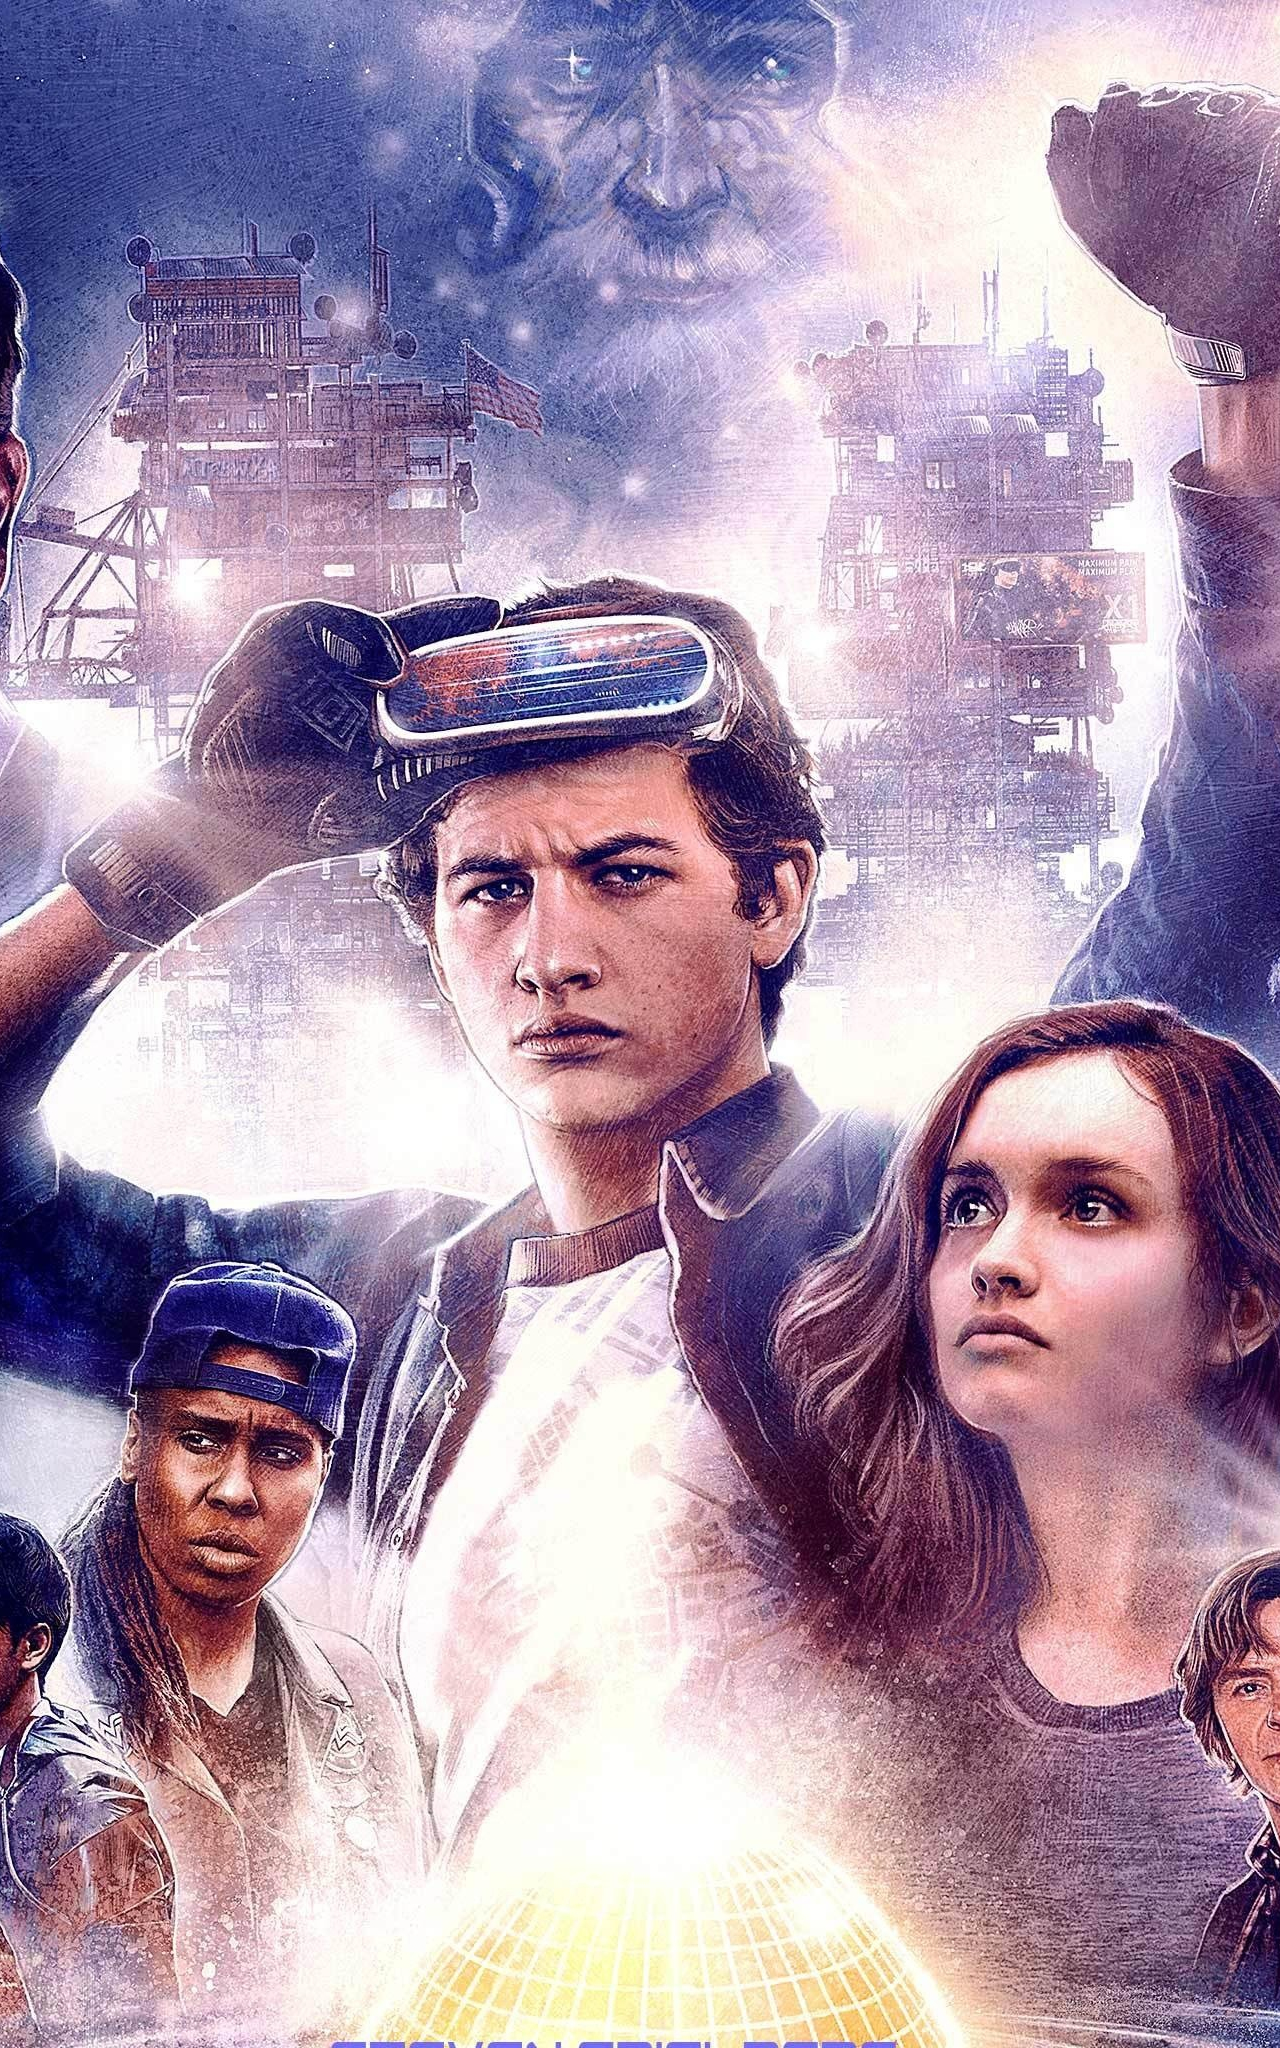 Download 1280x2120 Wallpaper Ready Player One 2018 Movie 80 S